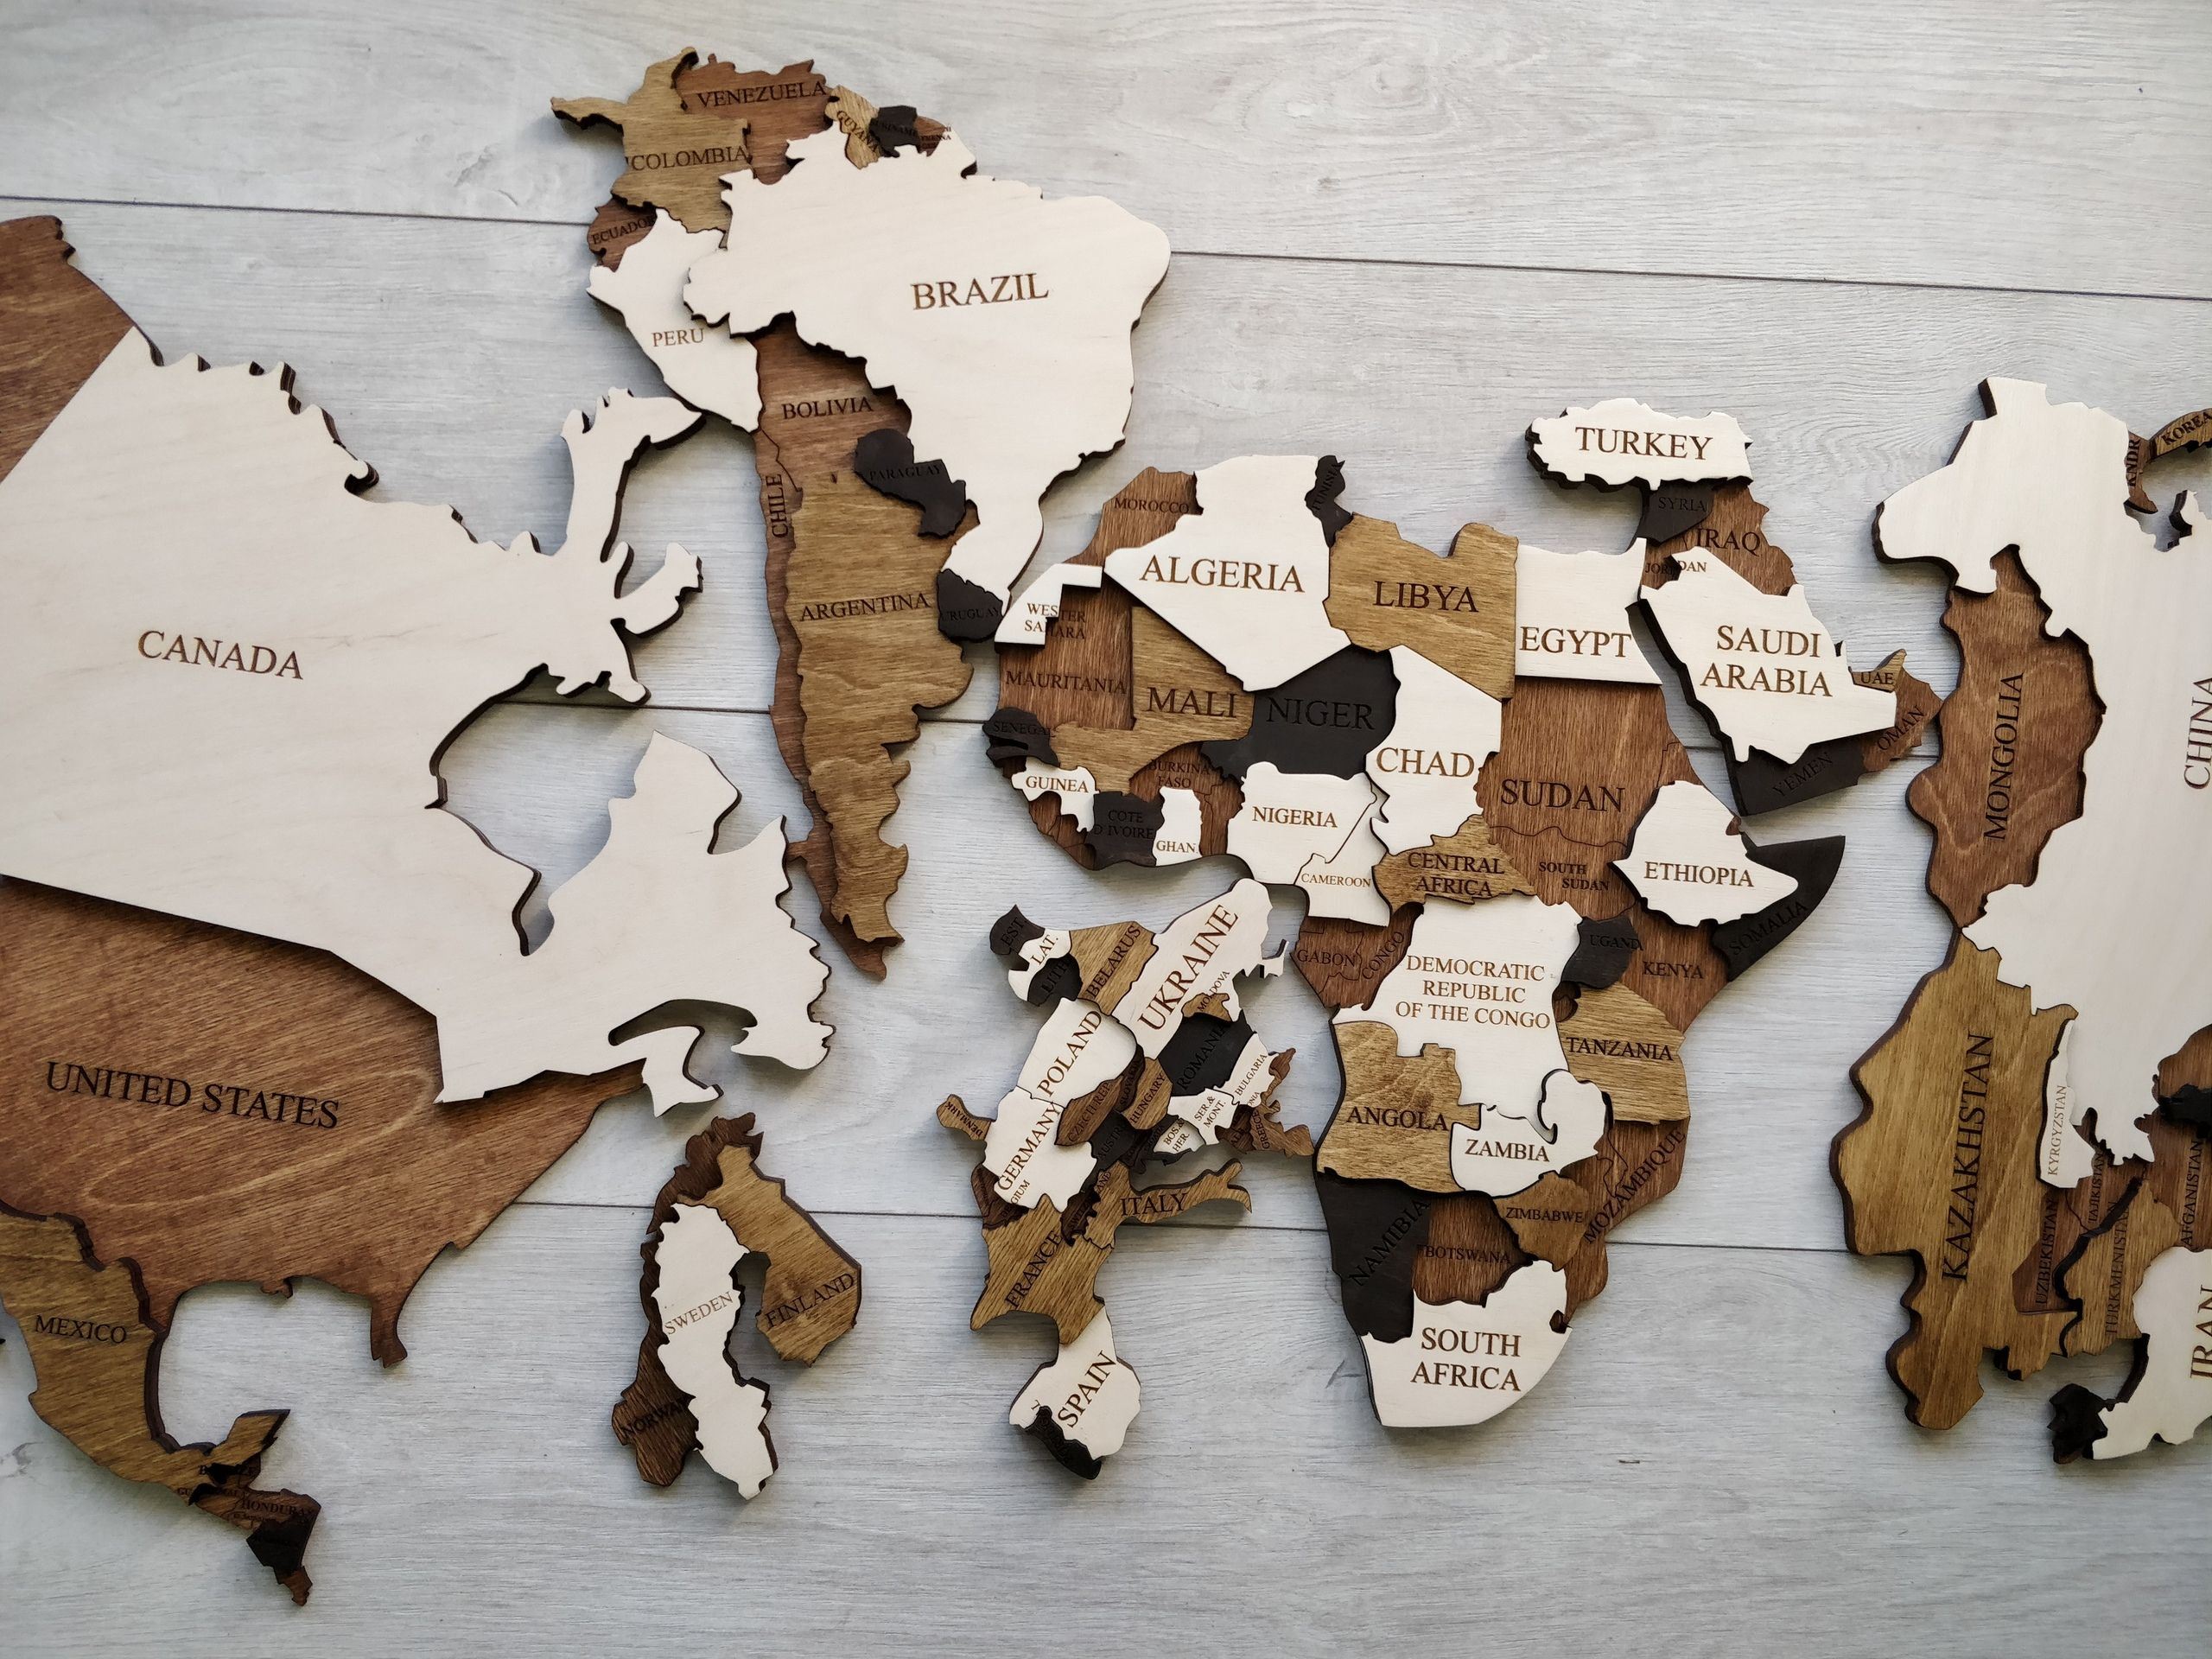 World Map Home Wall Decor Wooden Map World Map Wall Art Wood Wall Art Push Pin Map Rustic Vintage Travel Valentines Gift